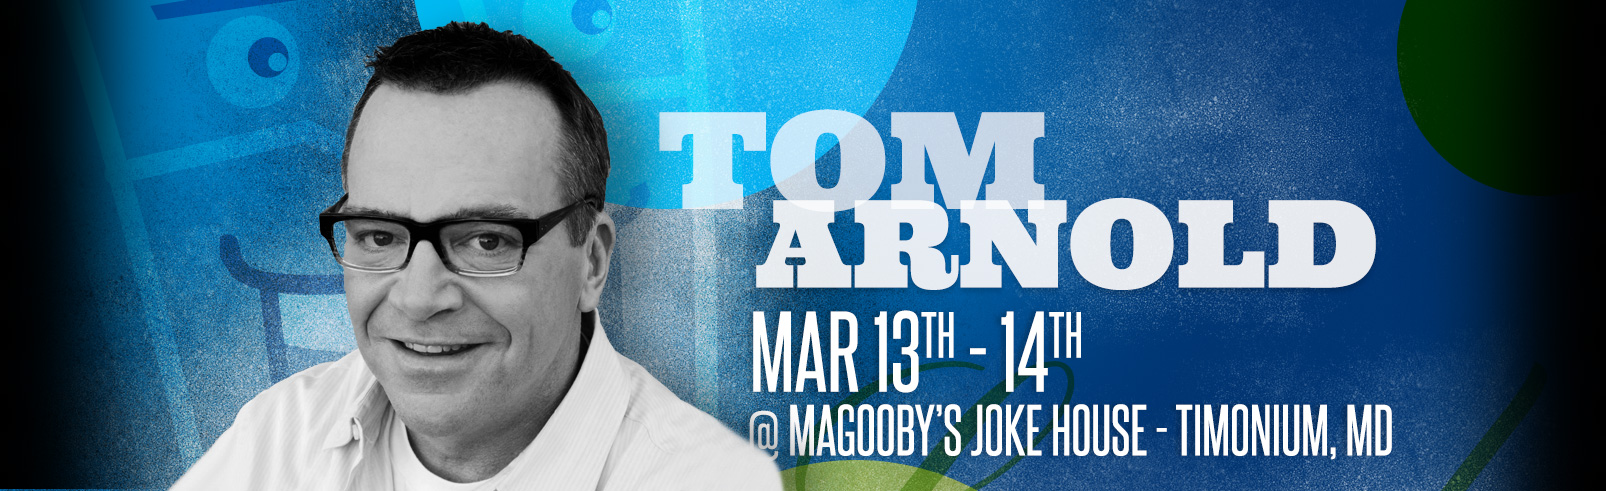 Tom Arnold @ Magooby's Joke House